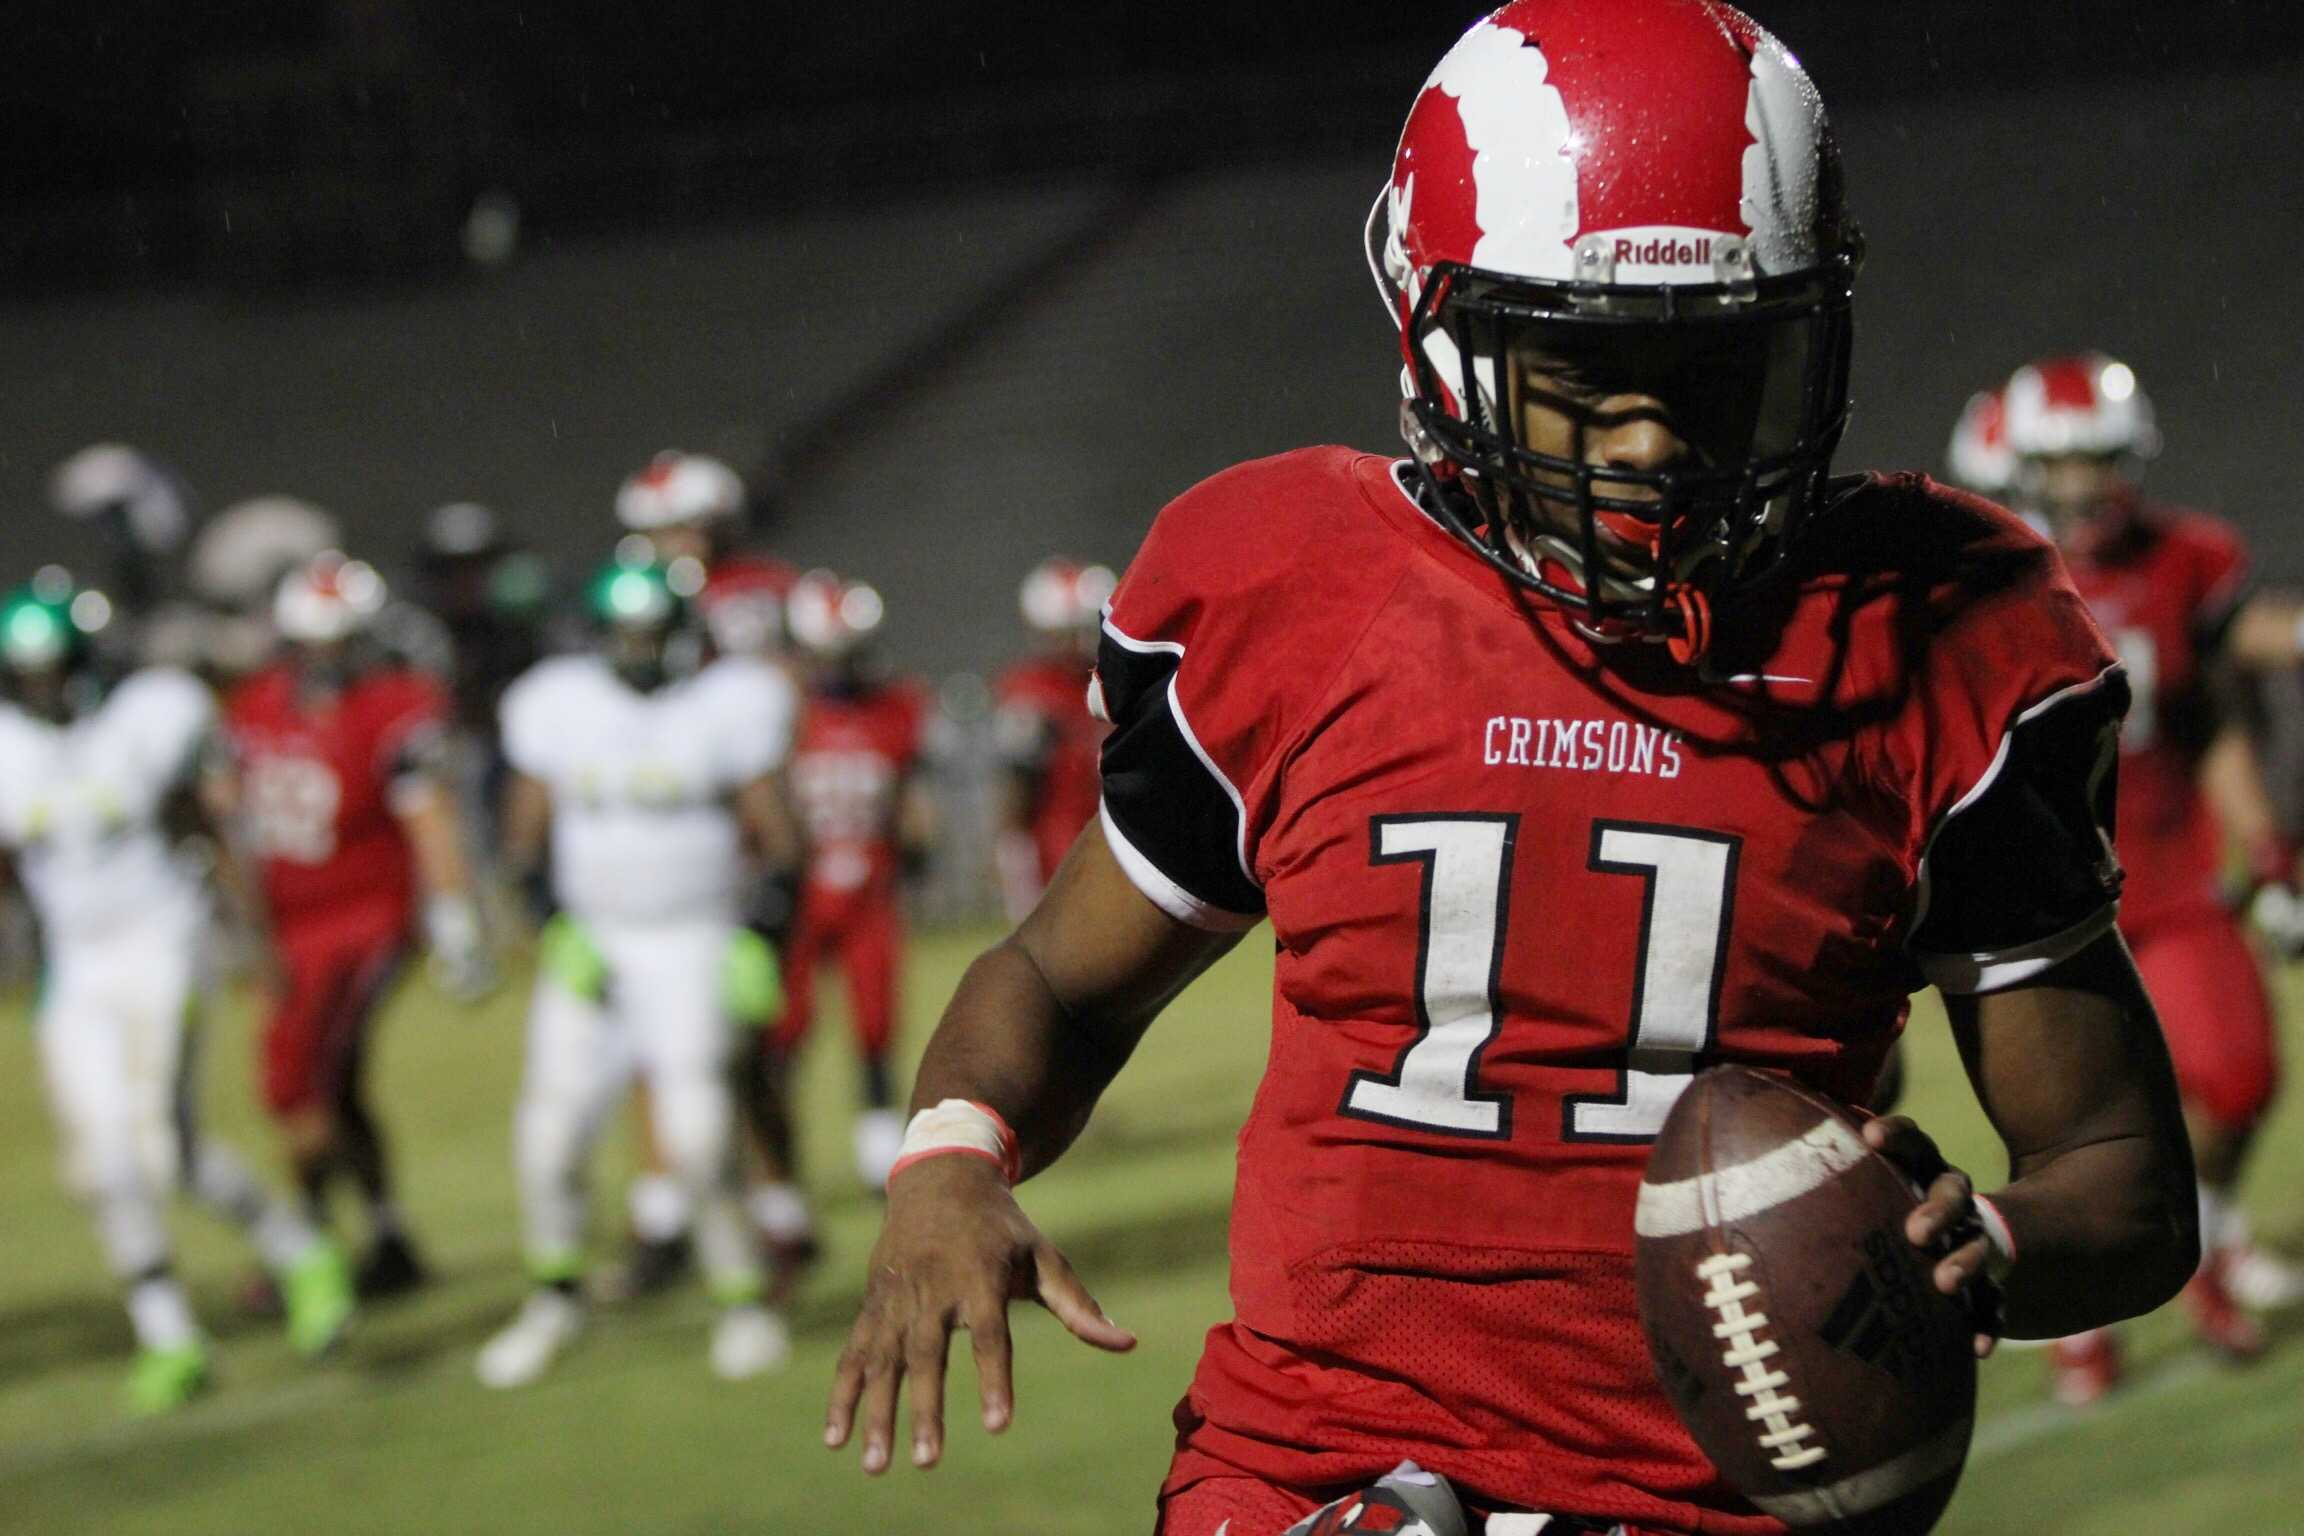 Receiver Jailen Cater (11, #11) after catching a one yard touchdown pass to give Manual a 28-0 lead in the second quarter. Photo by Meaghan Sutton.